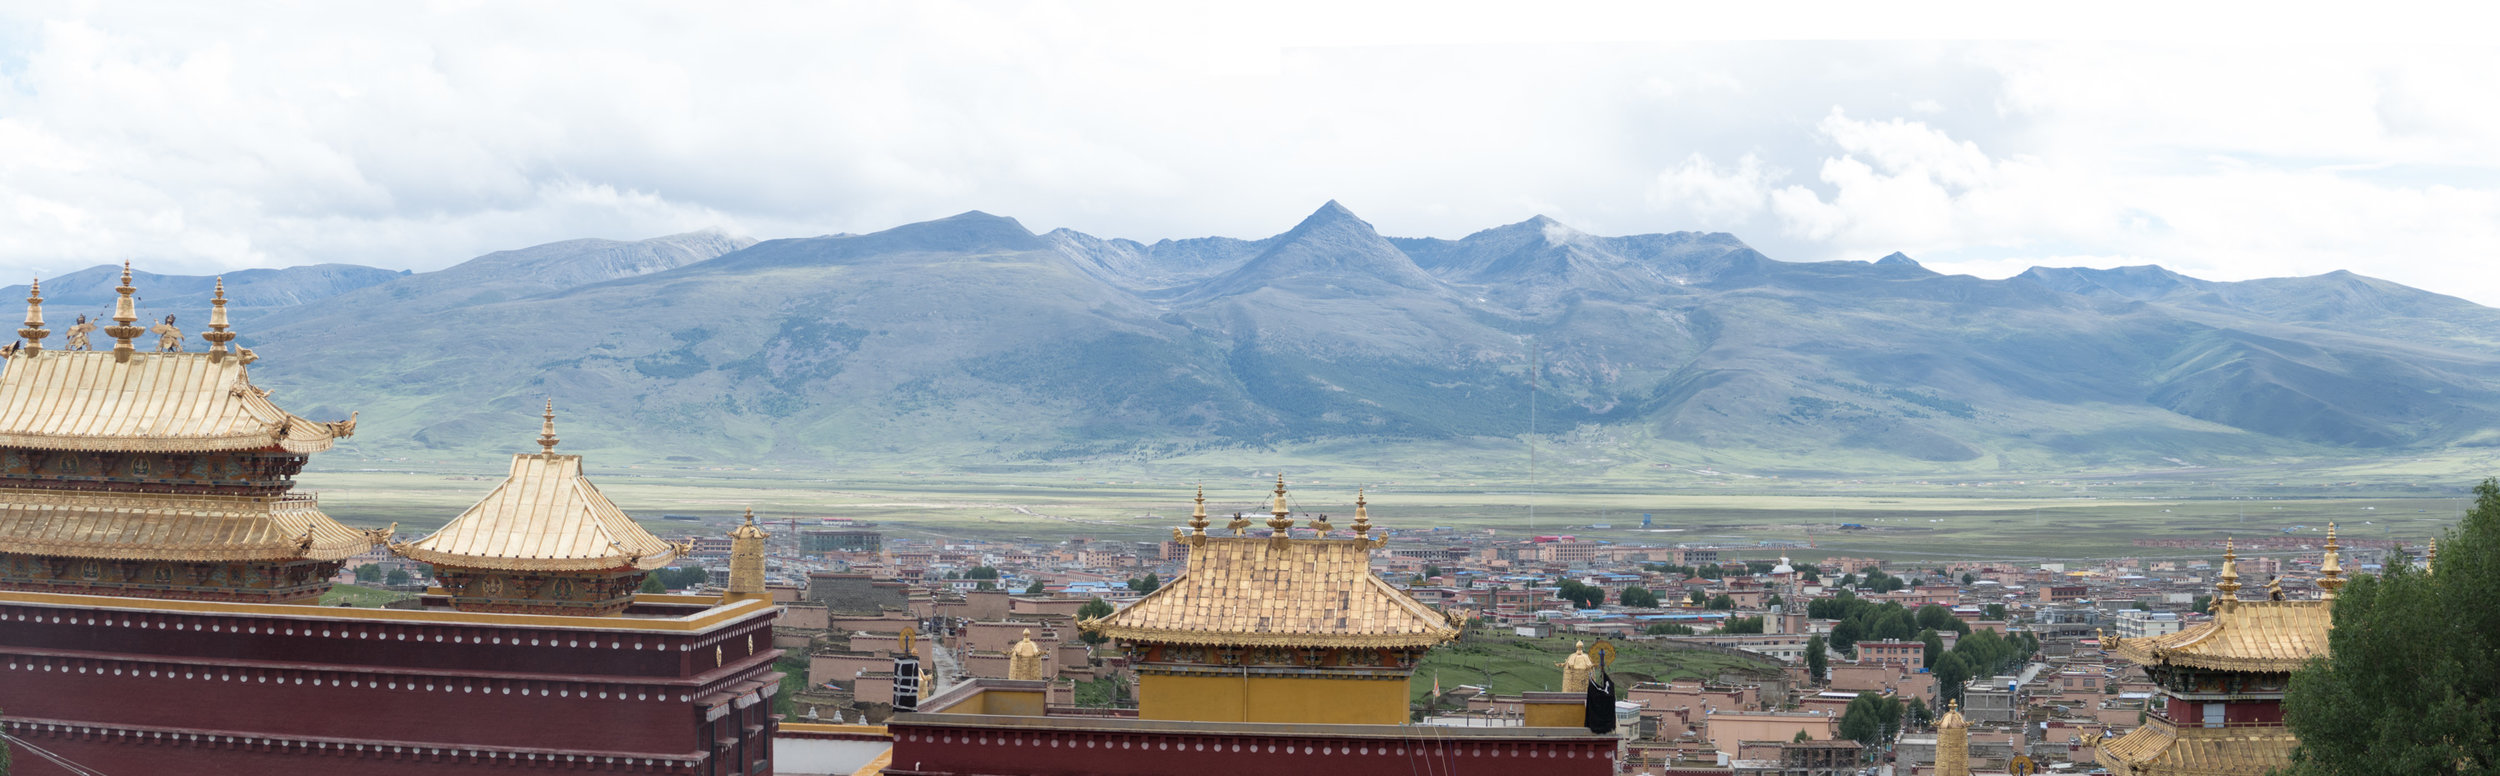 Panorama of the monastery and Lijiang city with mountains in the background